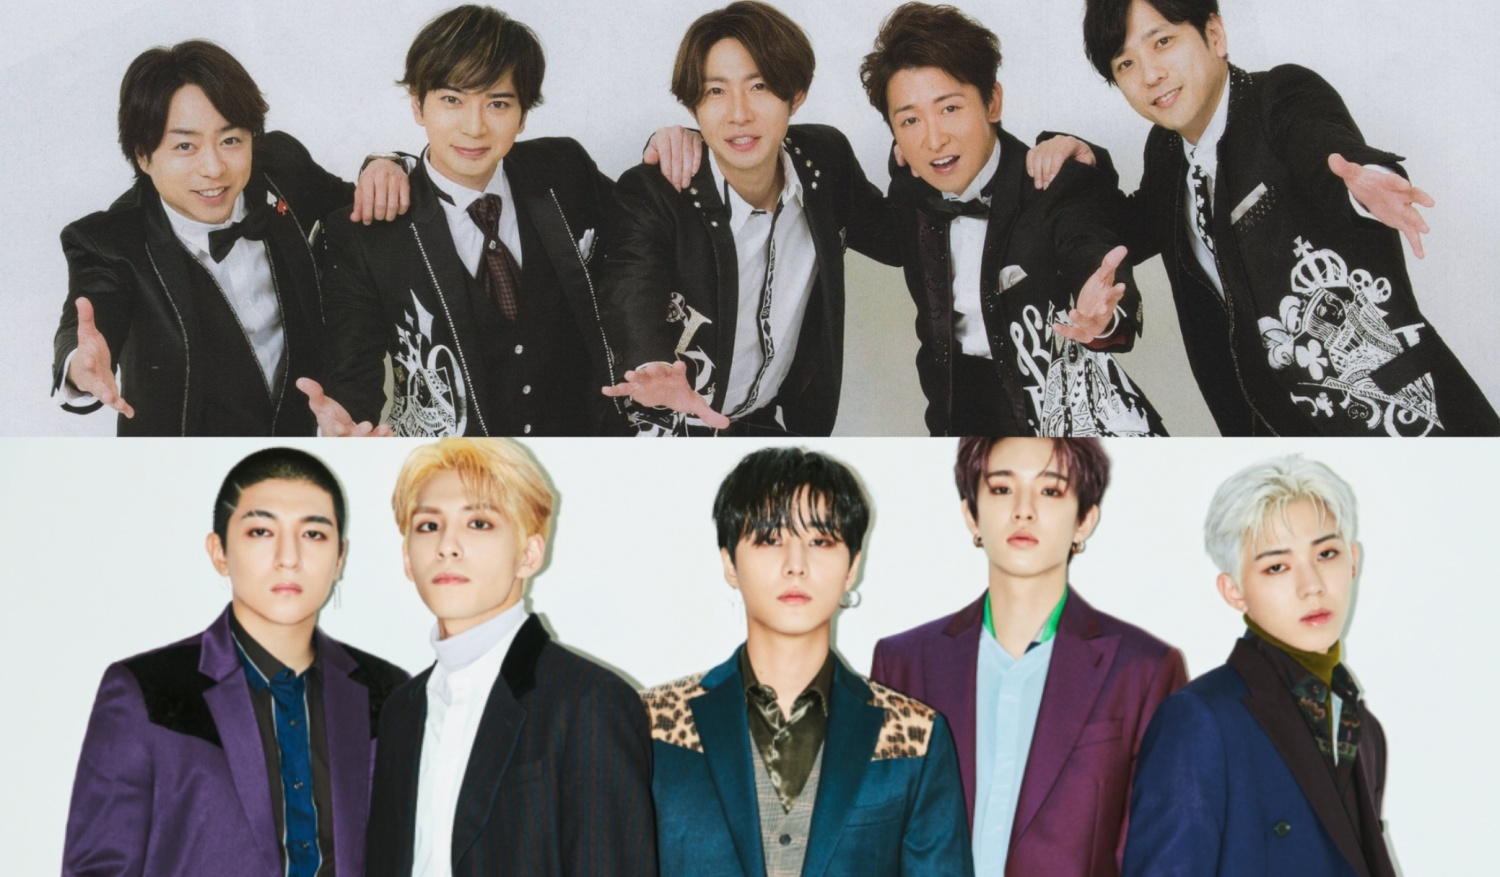 DAY6 MV Plagiarized by Arashi? K-Pop Band's MV Directors and JYPE Respond | KpopStarz